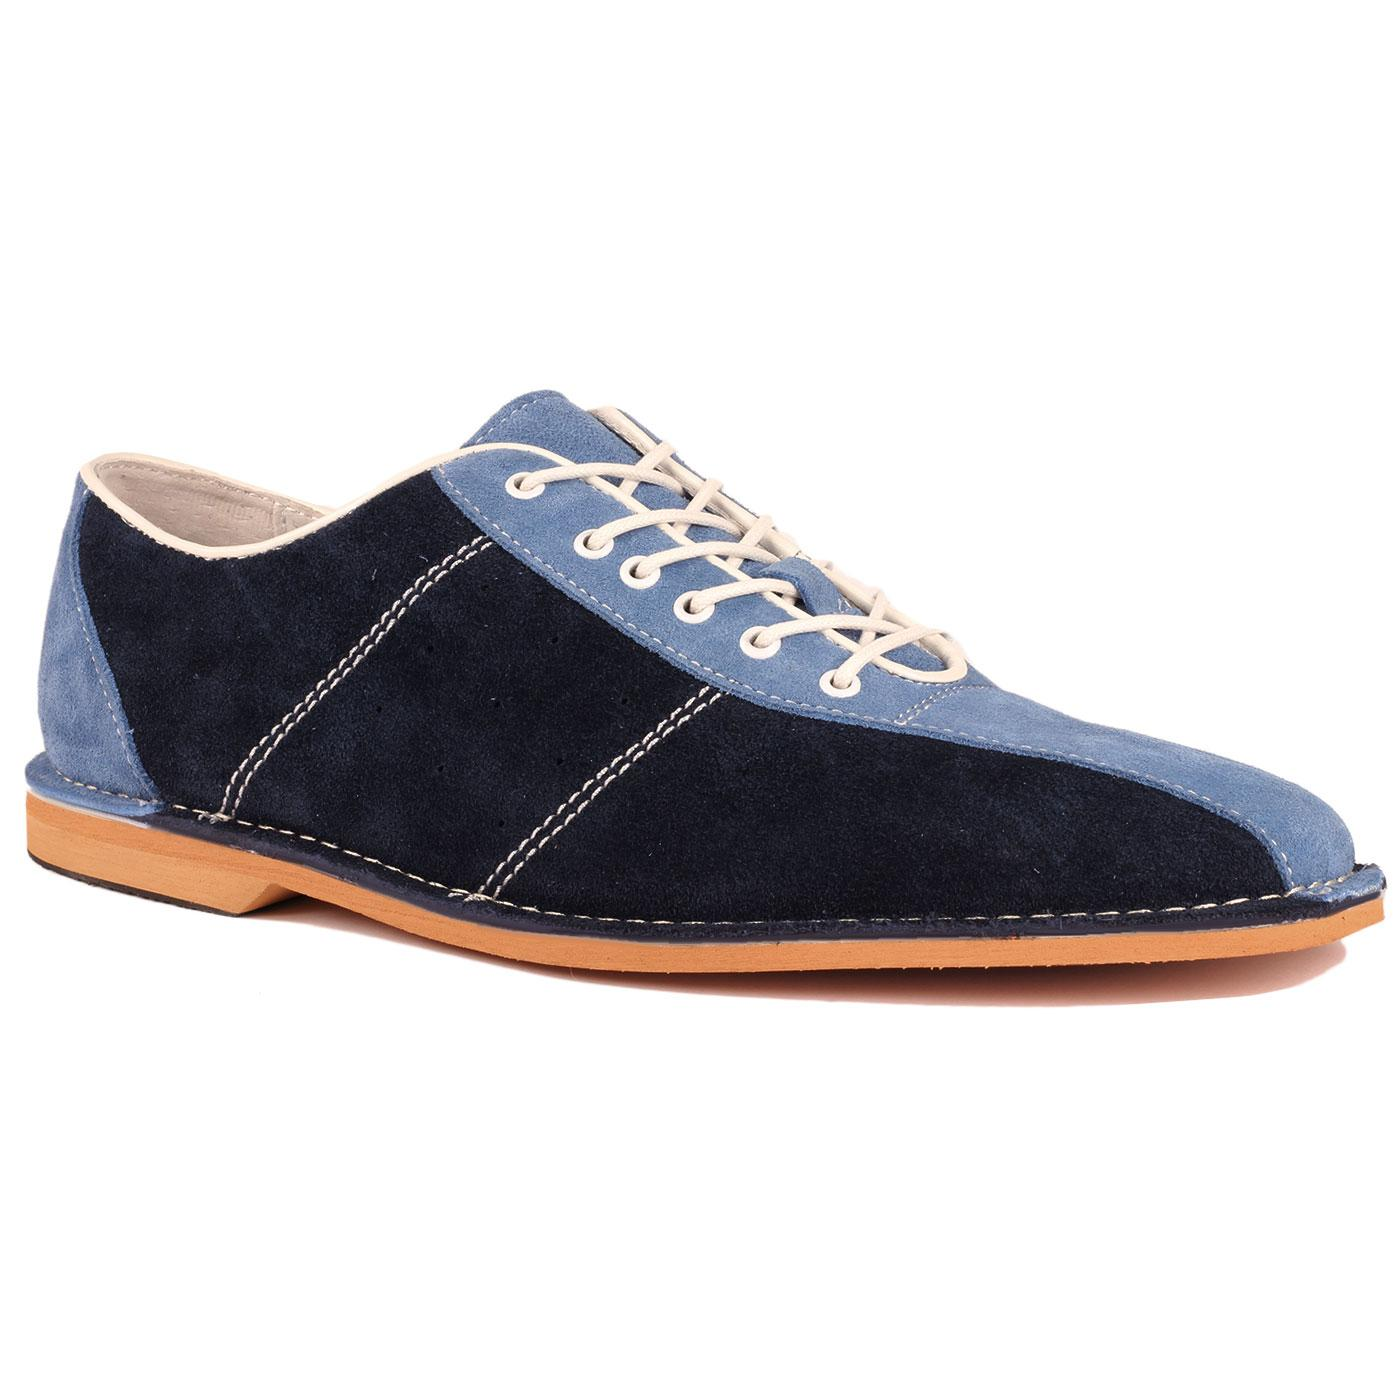 Madcap England All Up Men's Mod Northern Soul Bowling Shoes in Navy/Sky